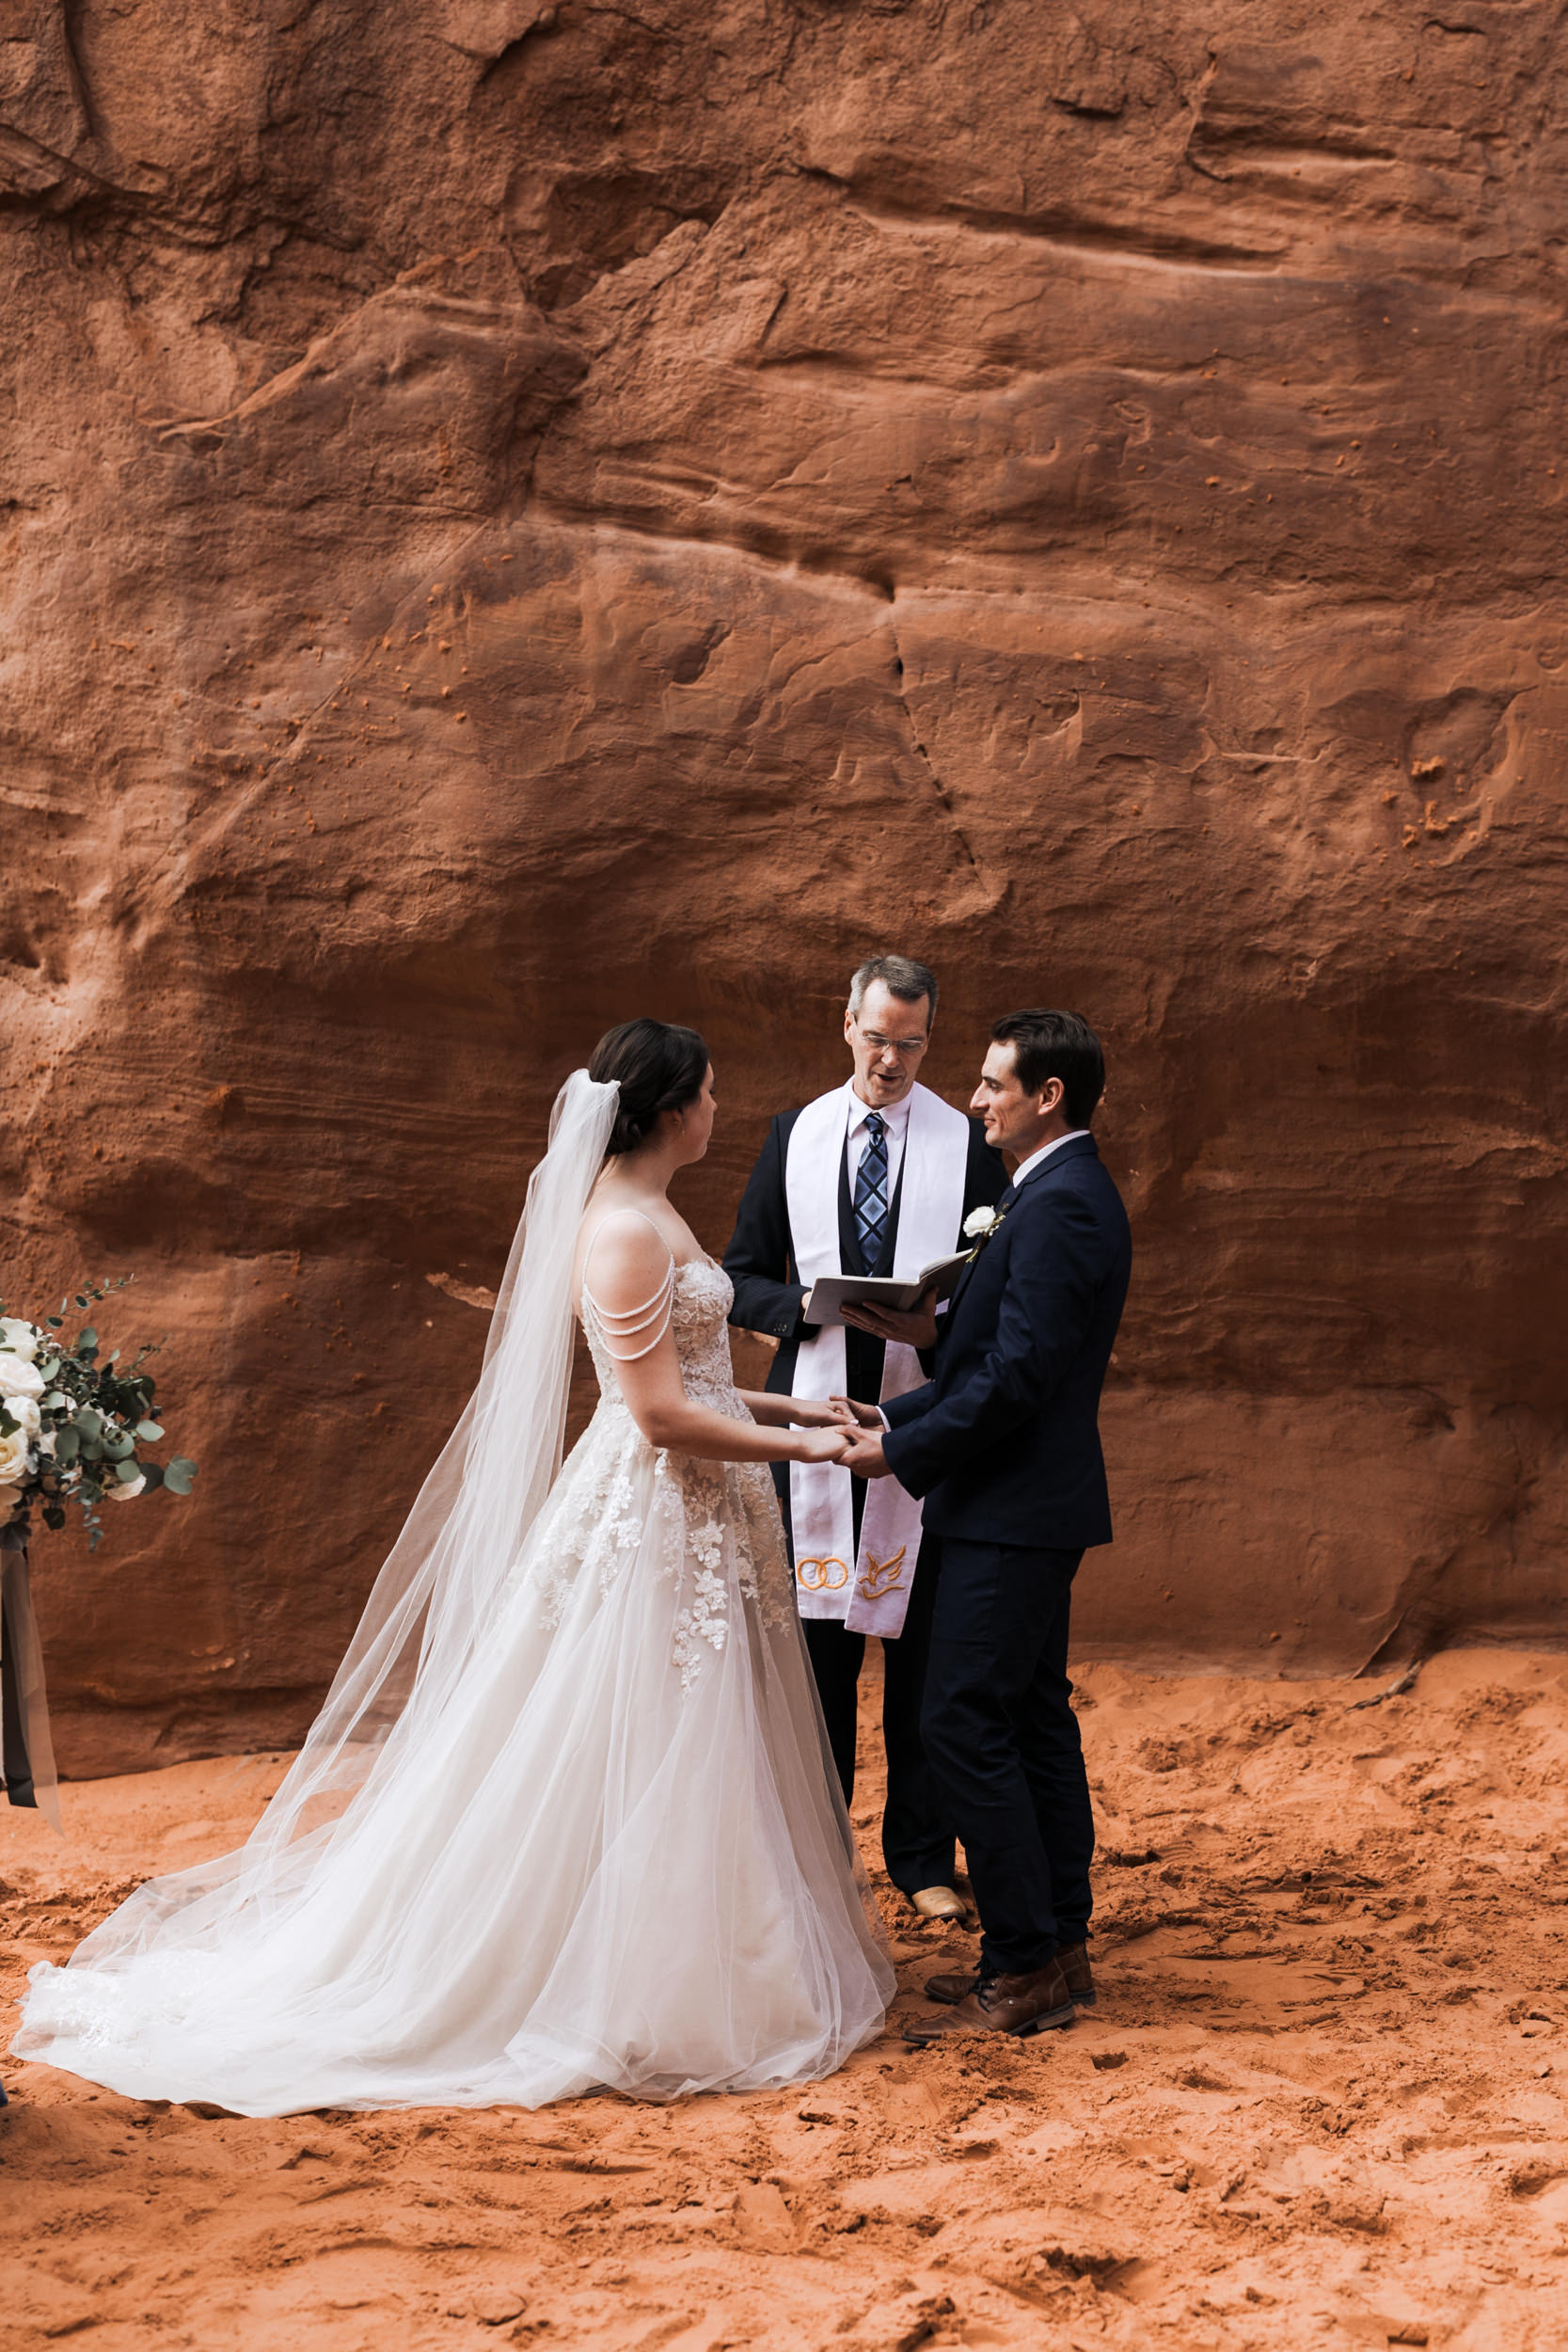 Jeff and Claire had a beautiful wedding ceremony in Arches National Park with their closest friends and family.